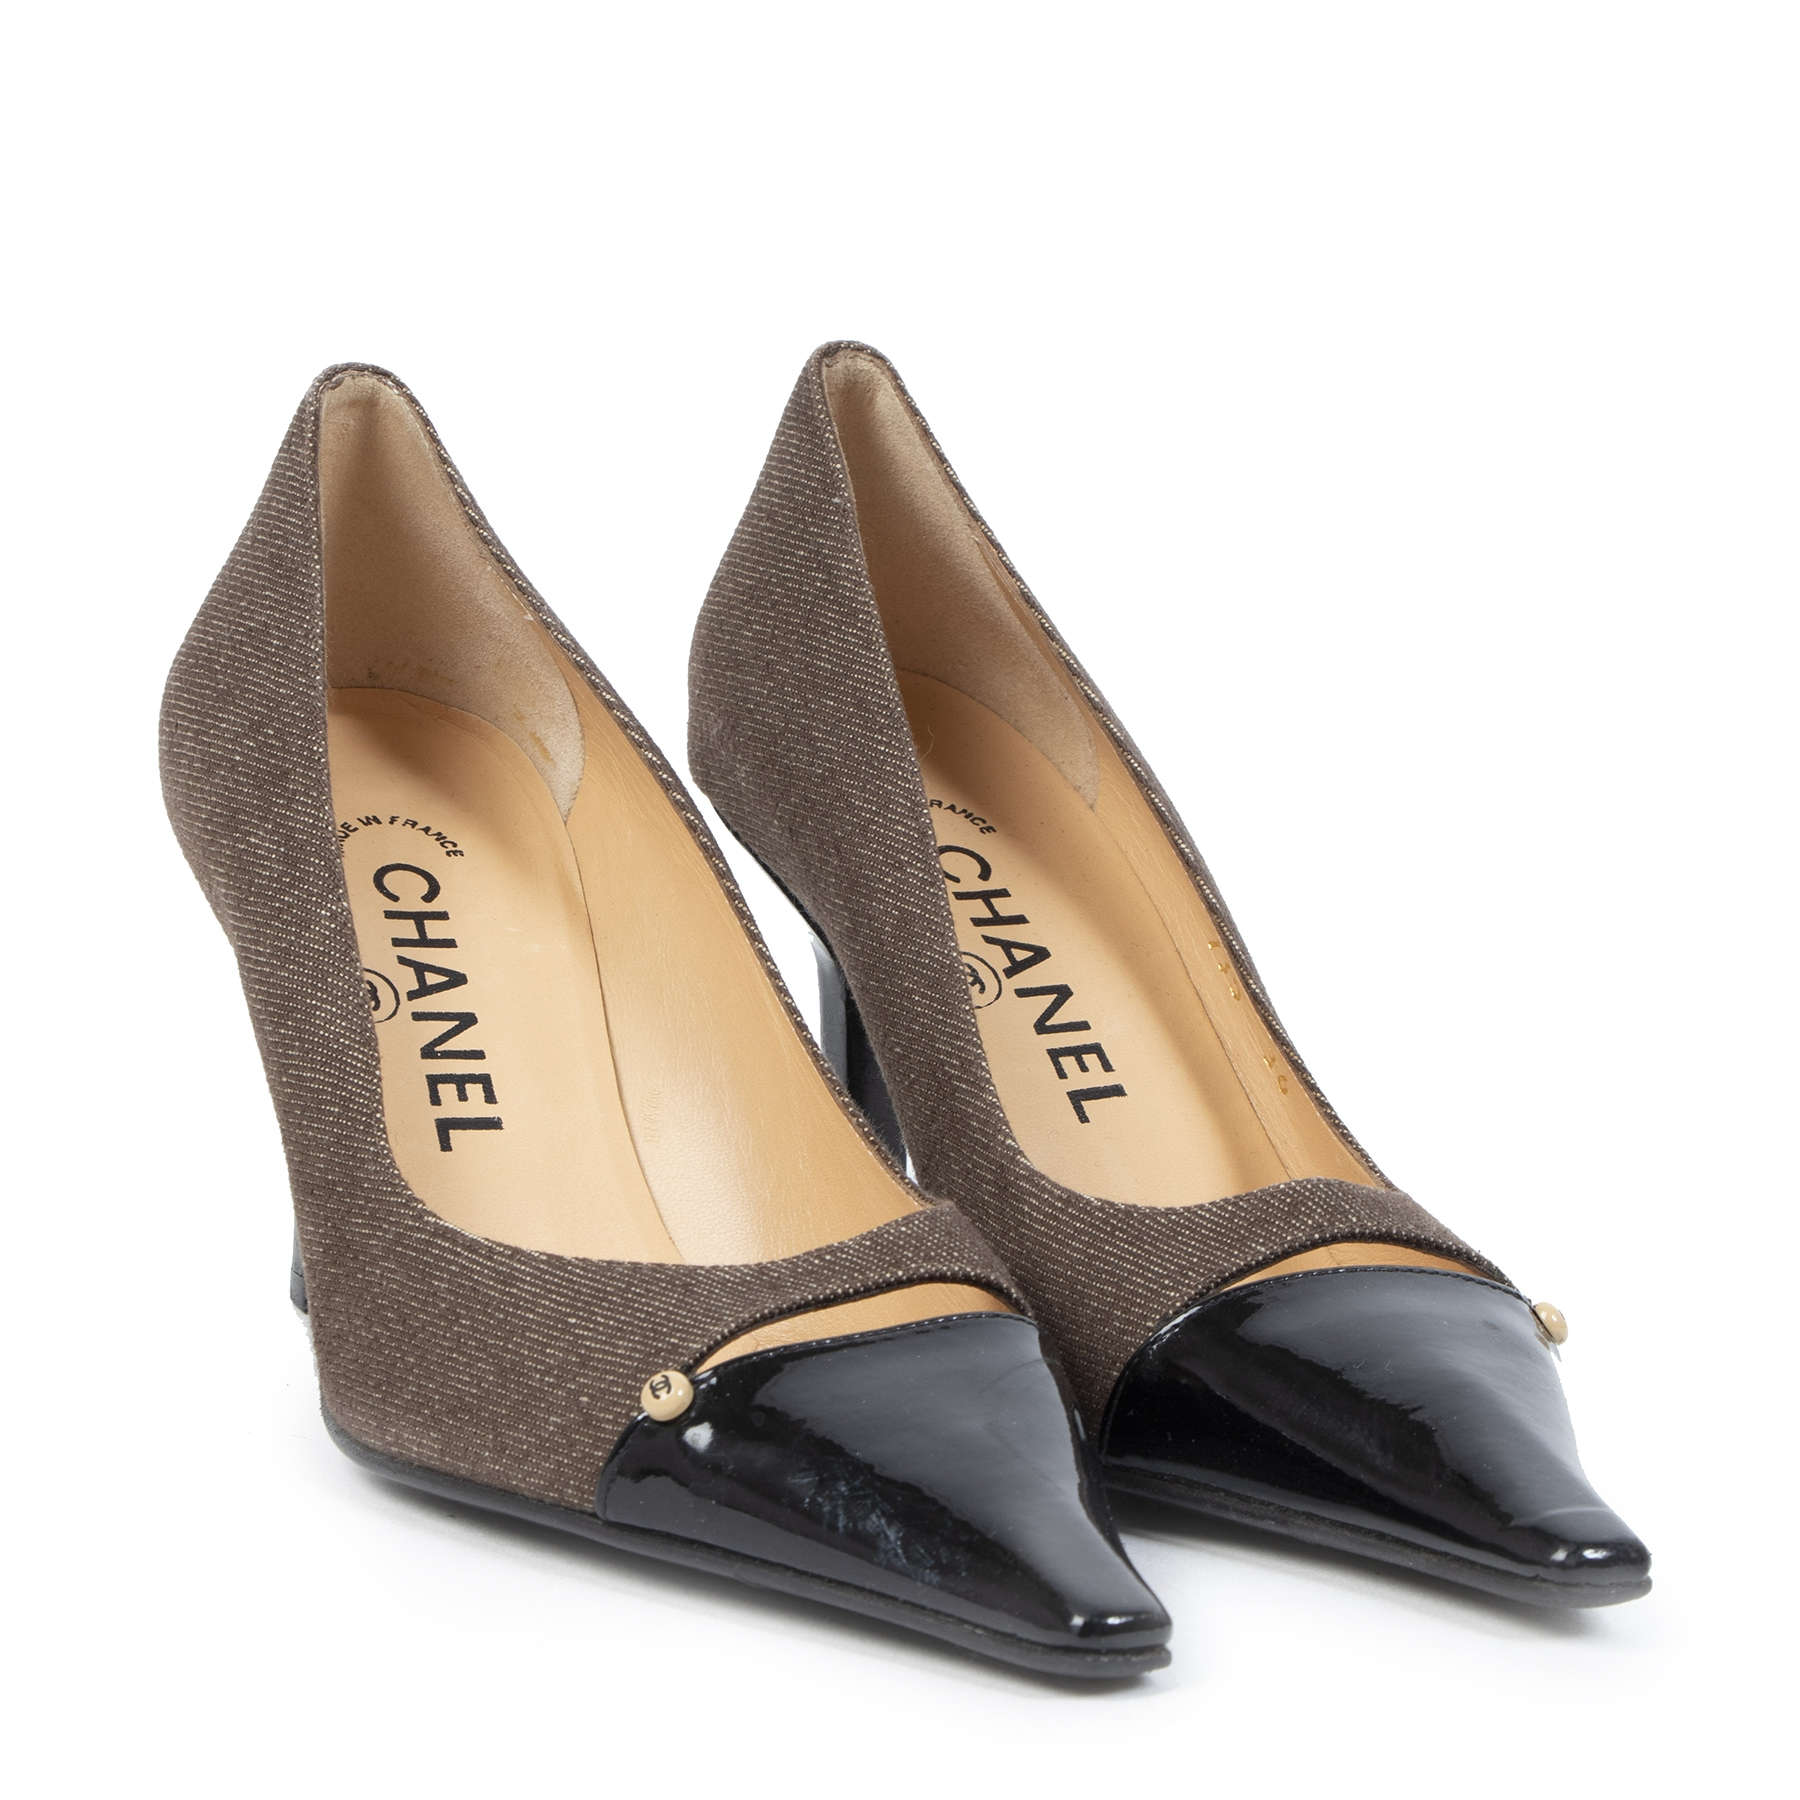 Authentic second-hand vintage Chanel Brown Cut-Out Pumps Size 36 buy online webshop LabelLOV